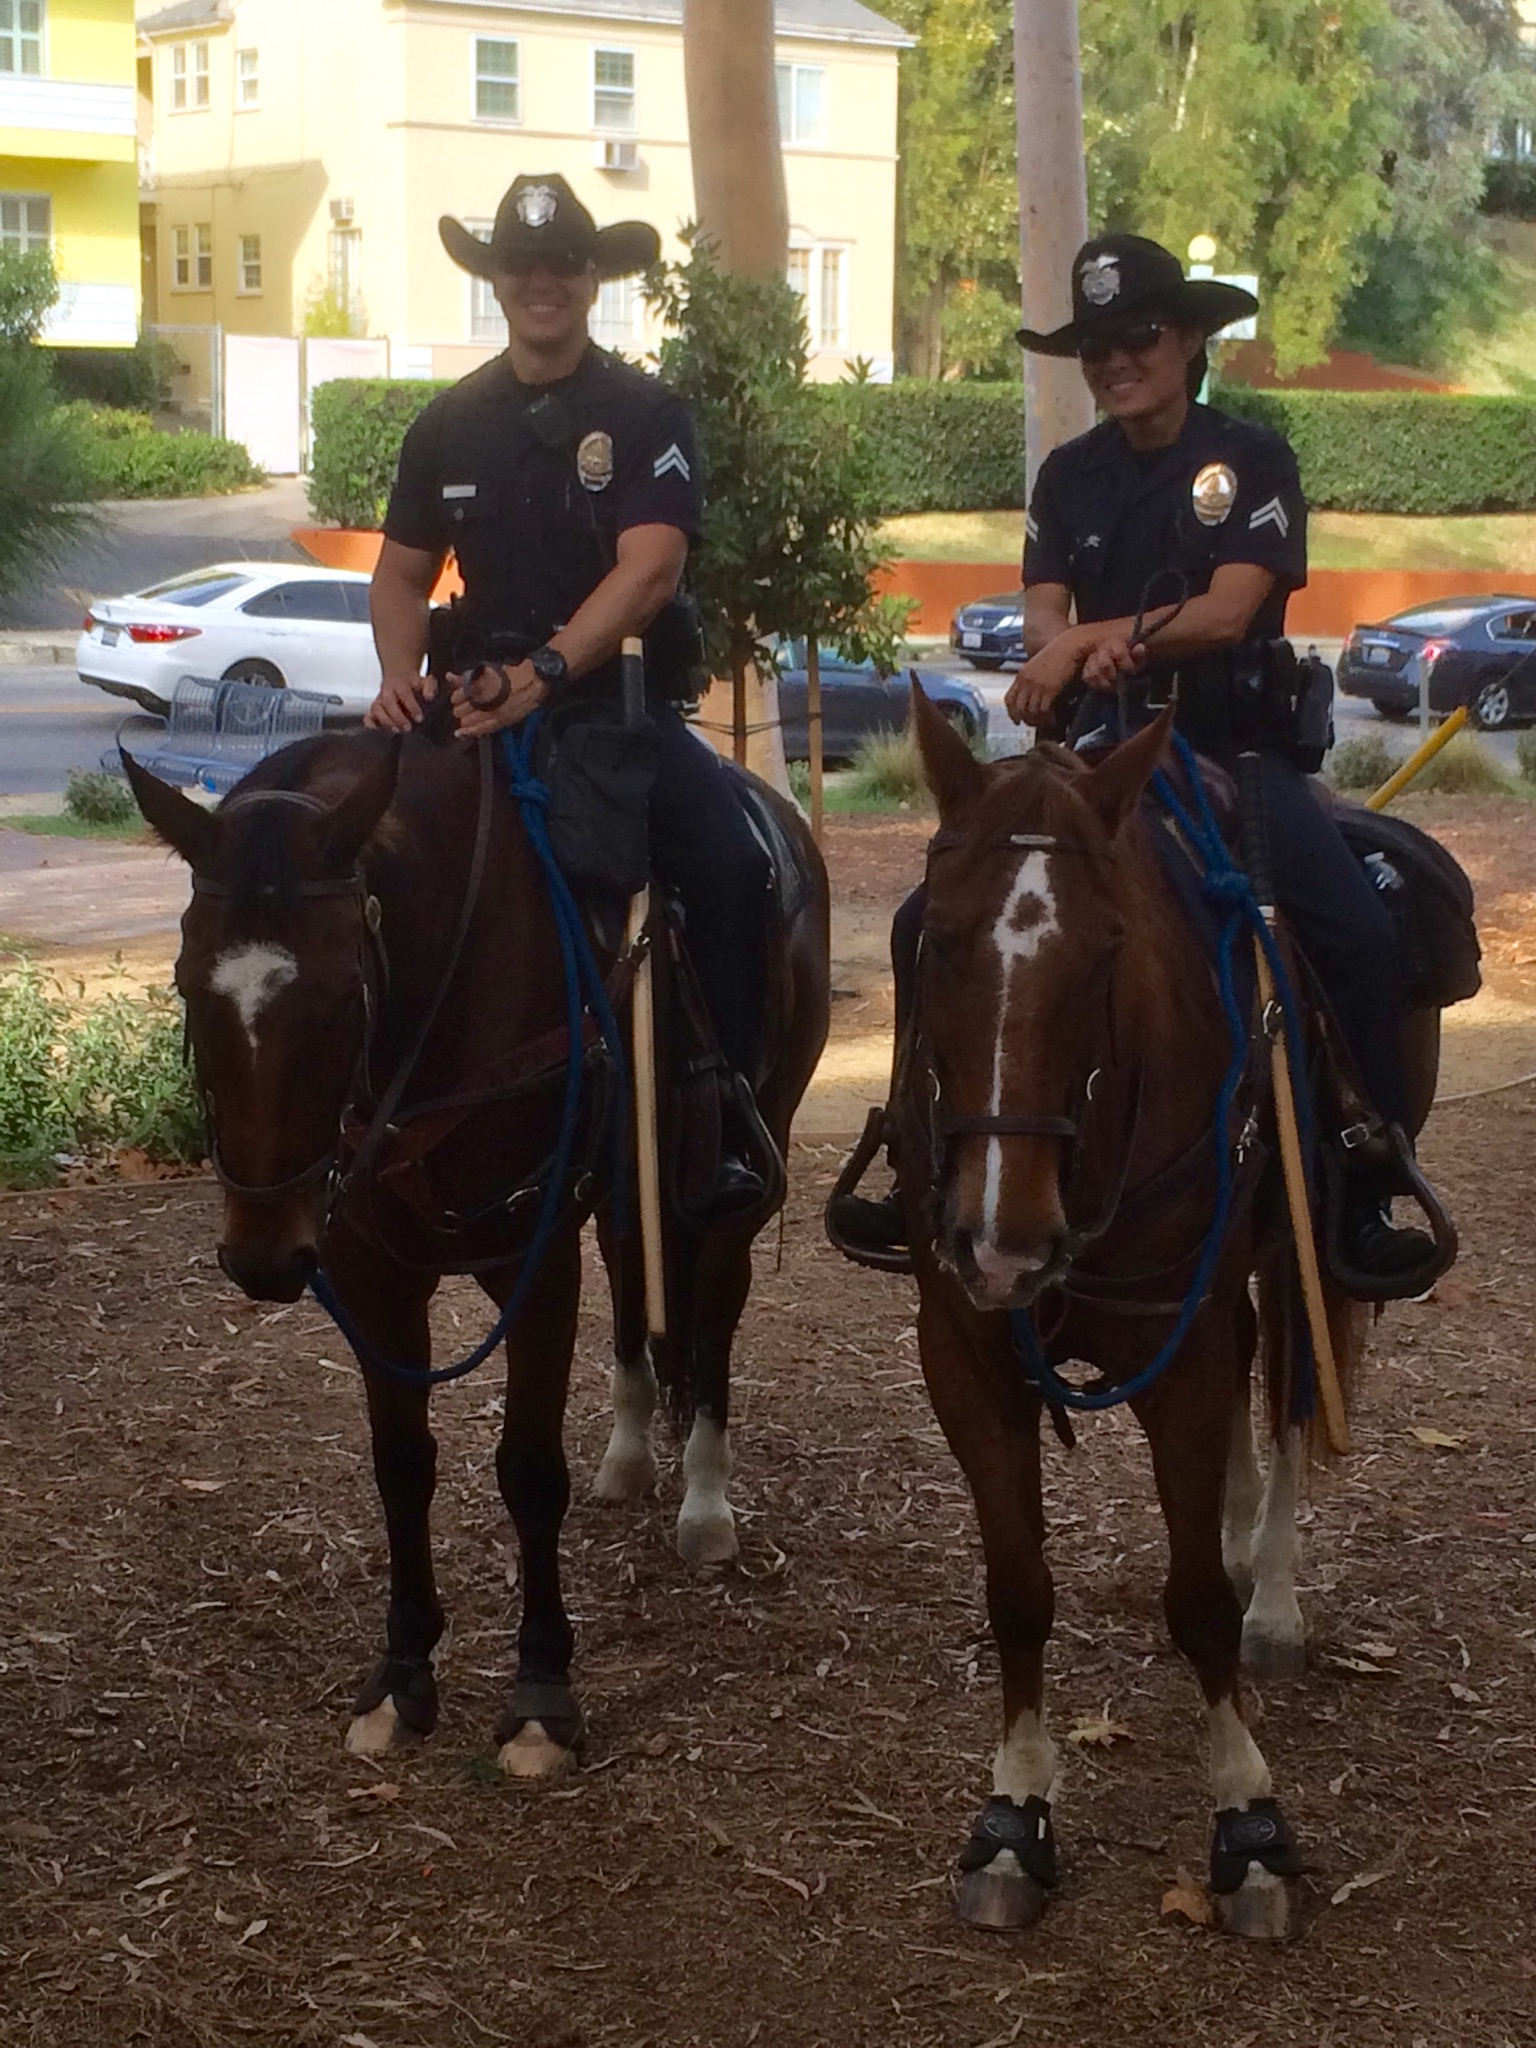 Officers keeping watch